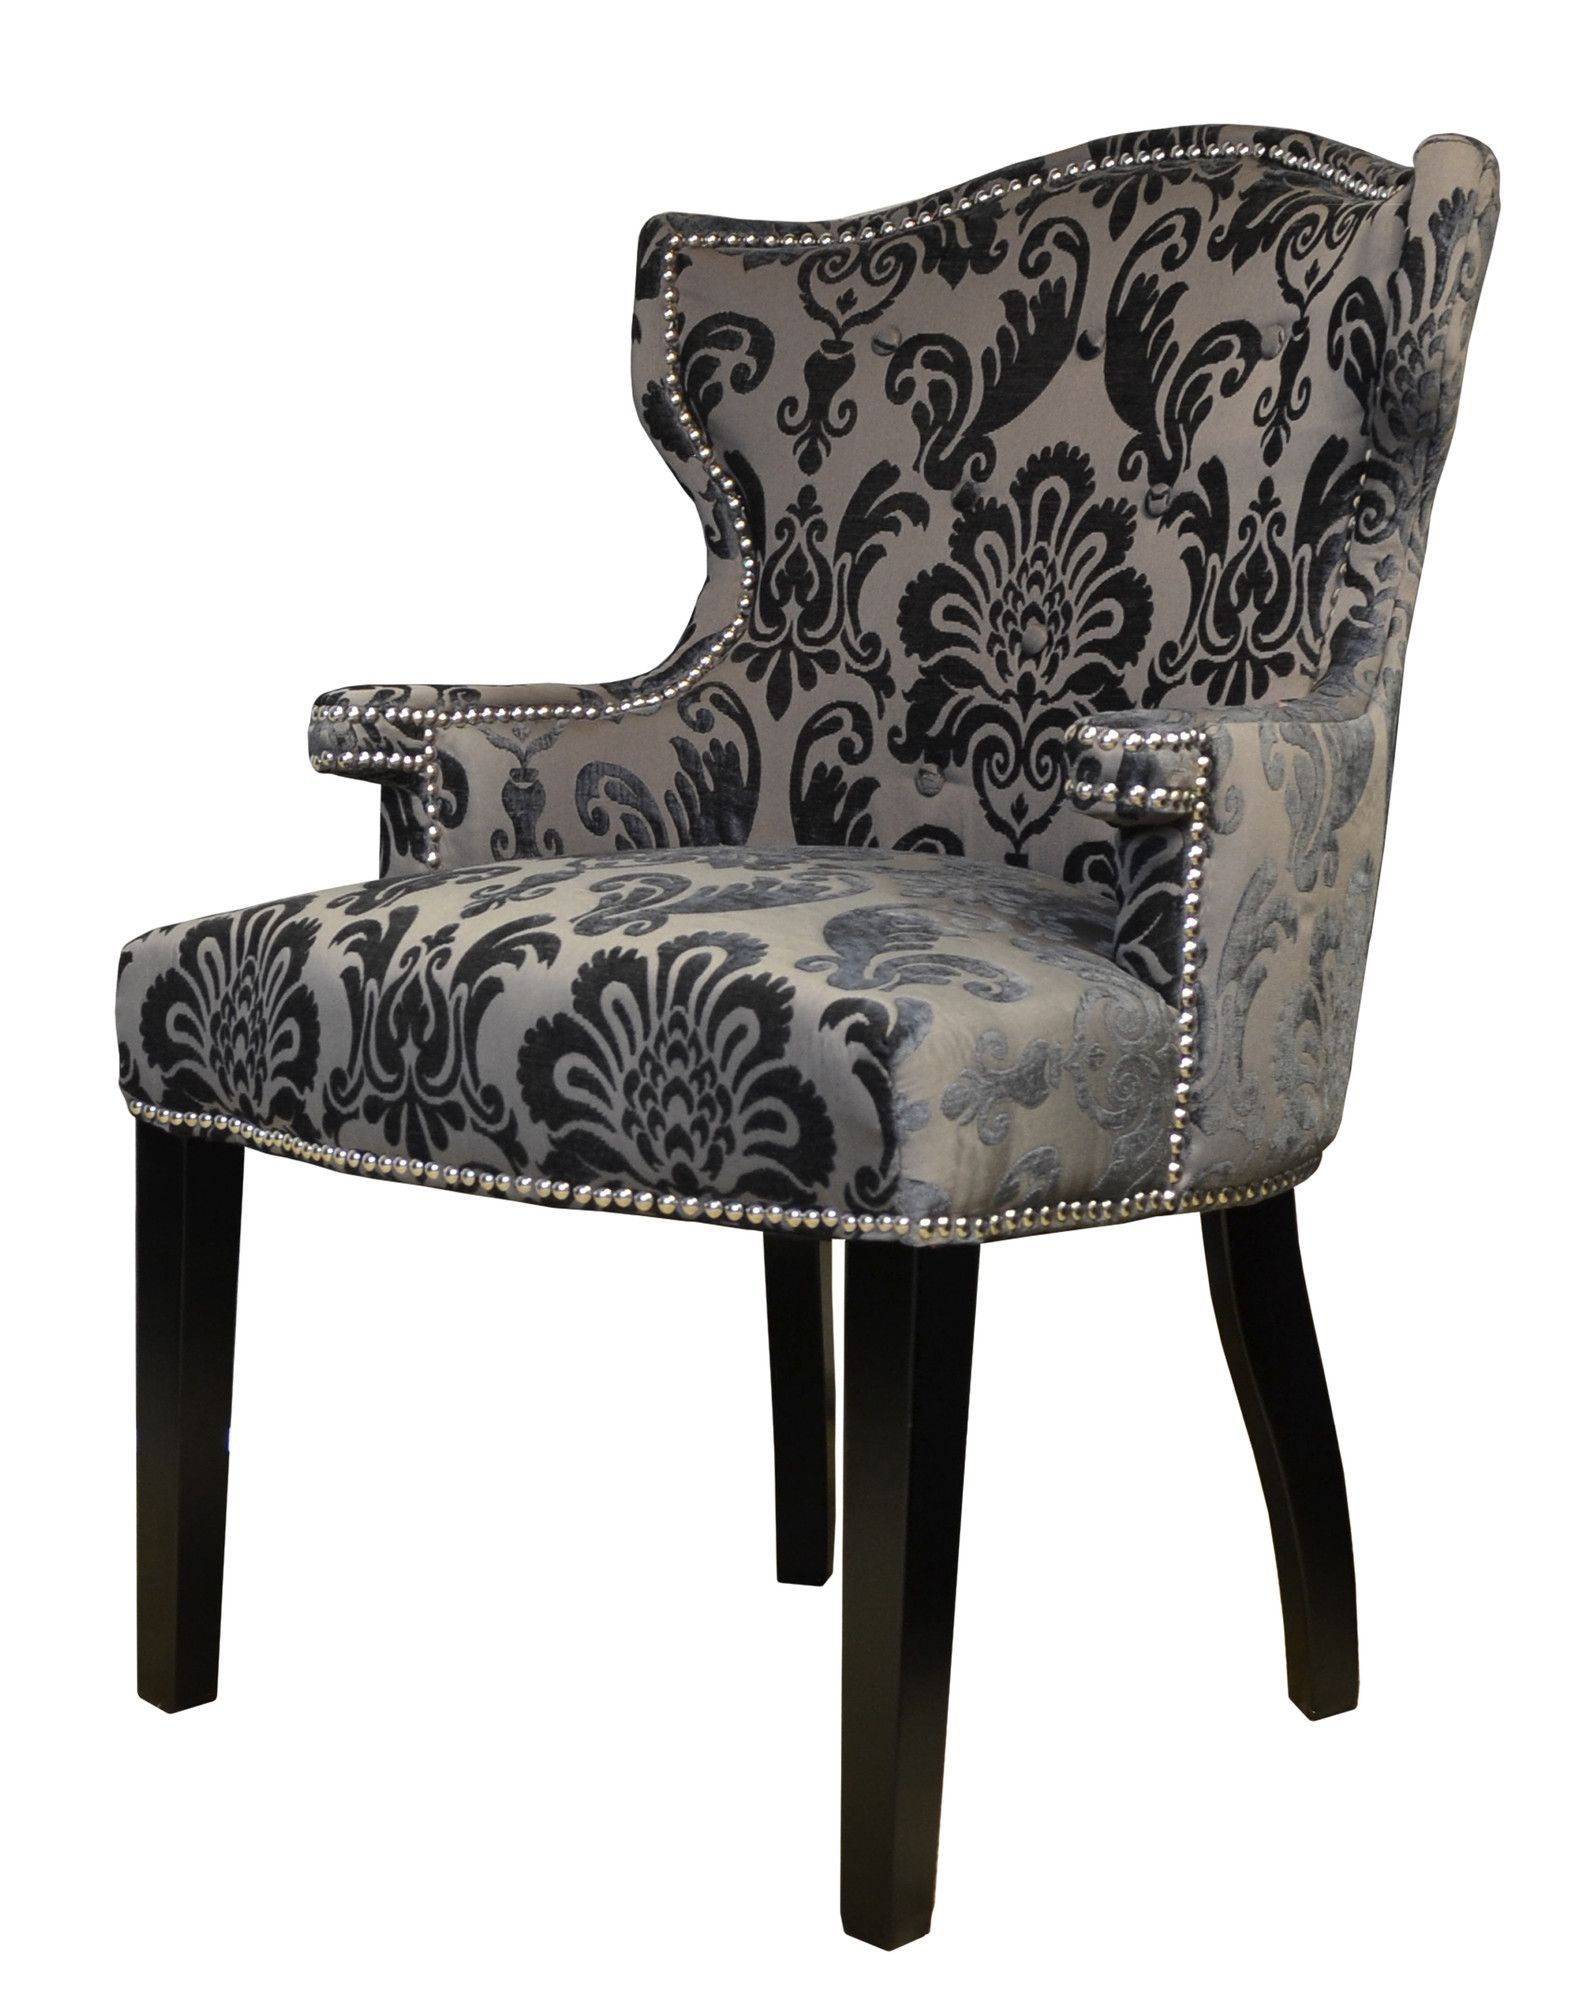 Brittania Fan Damask Arm Chair Wingback Chair Upholstery Accent Chair Chair